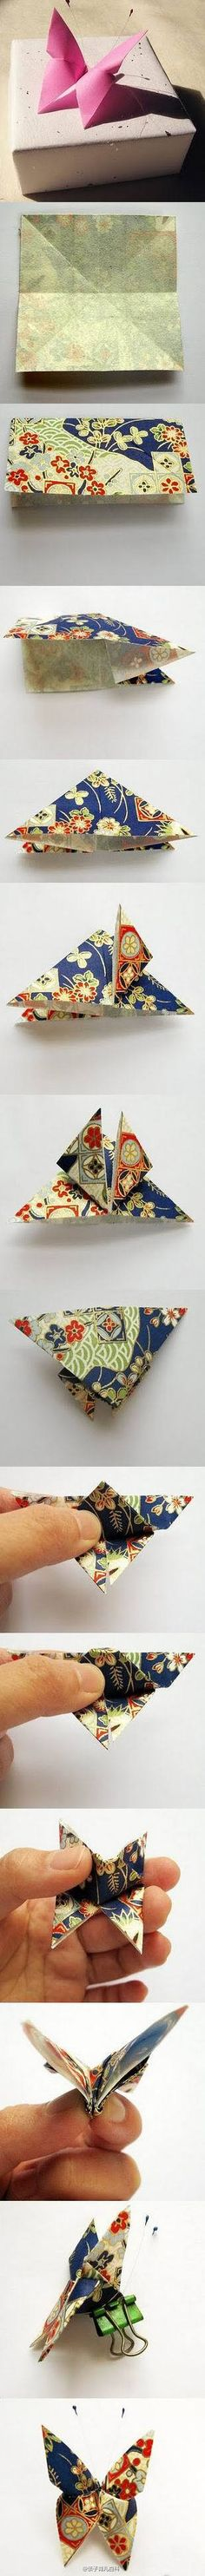 origami butterfly - im doing it now!